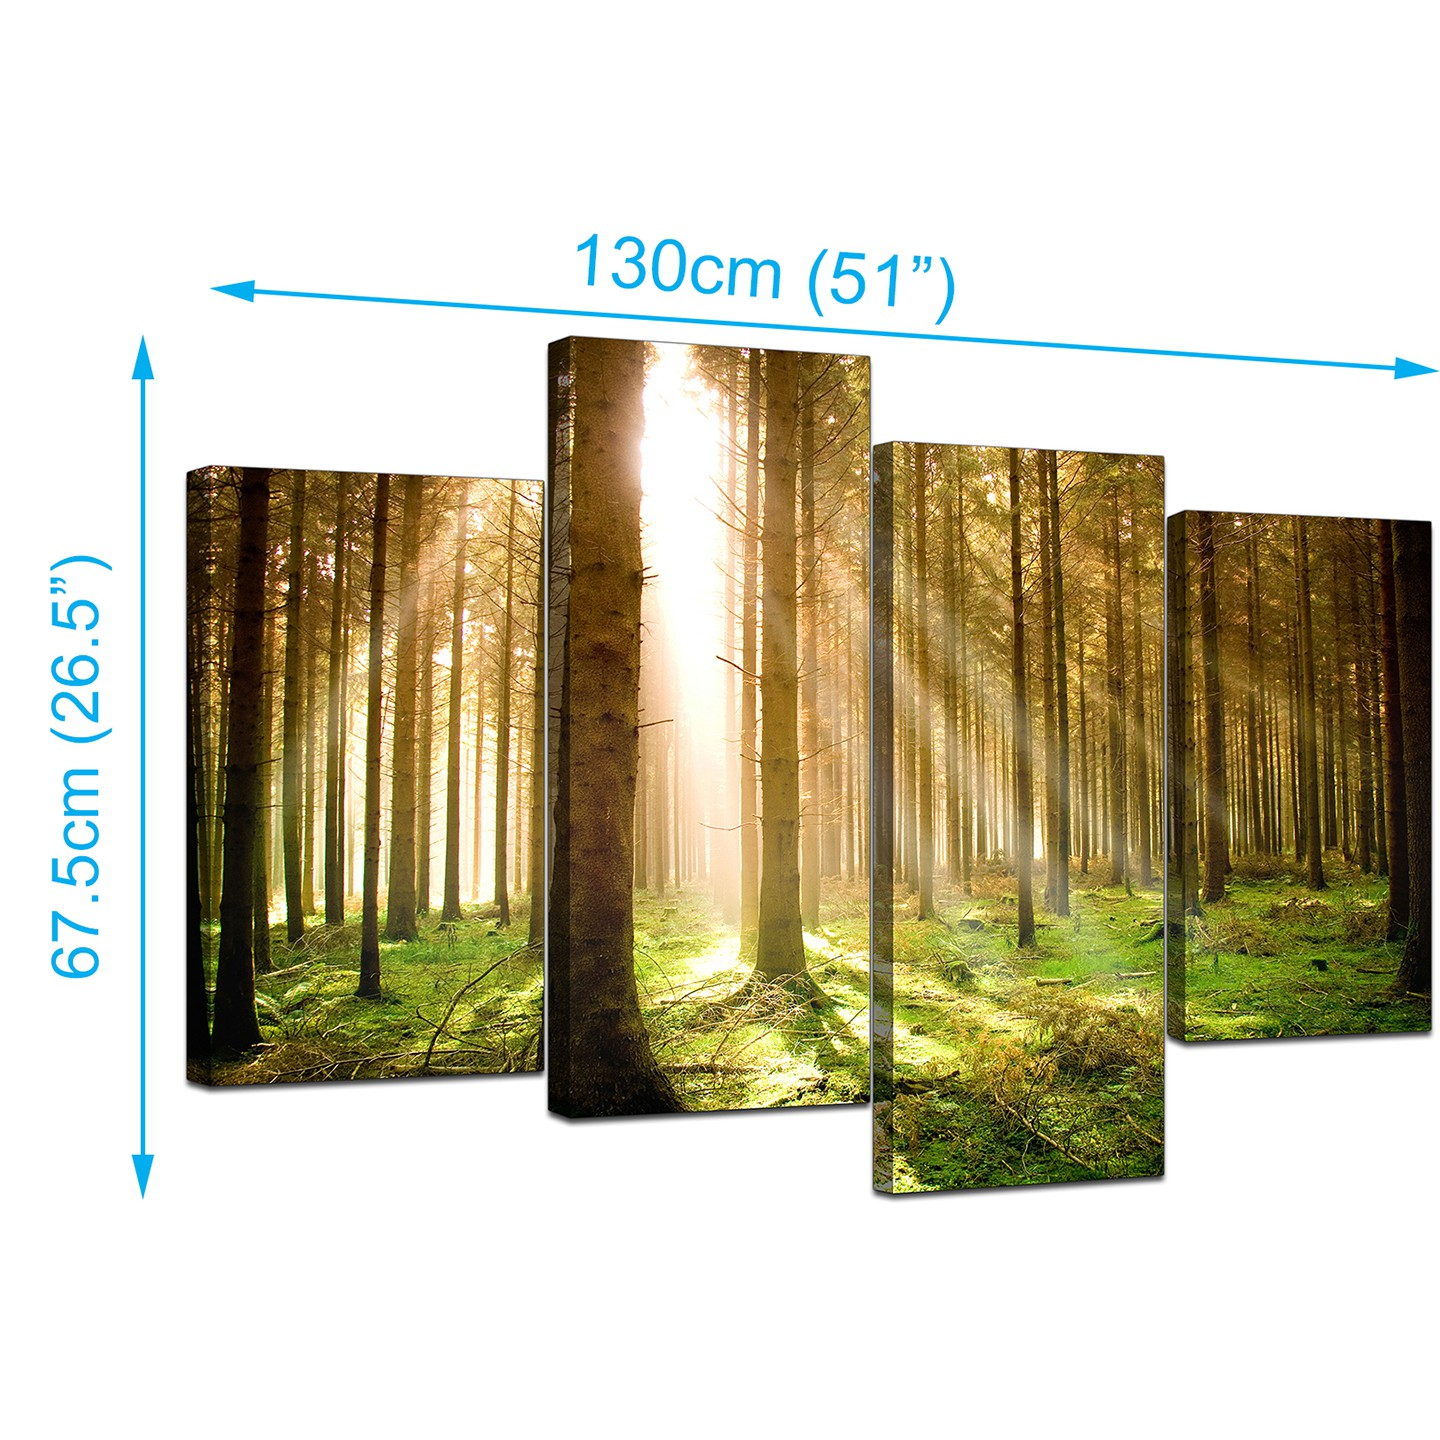 Canvas Art of Trees for your Bedroom - 4 Part